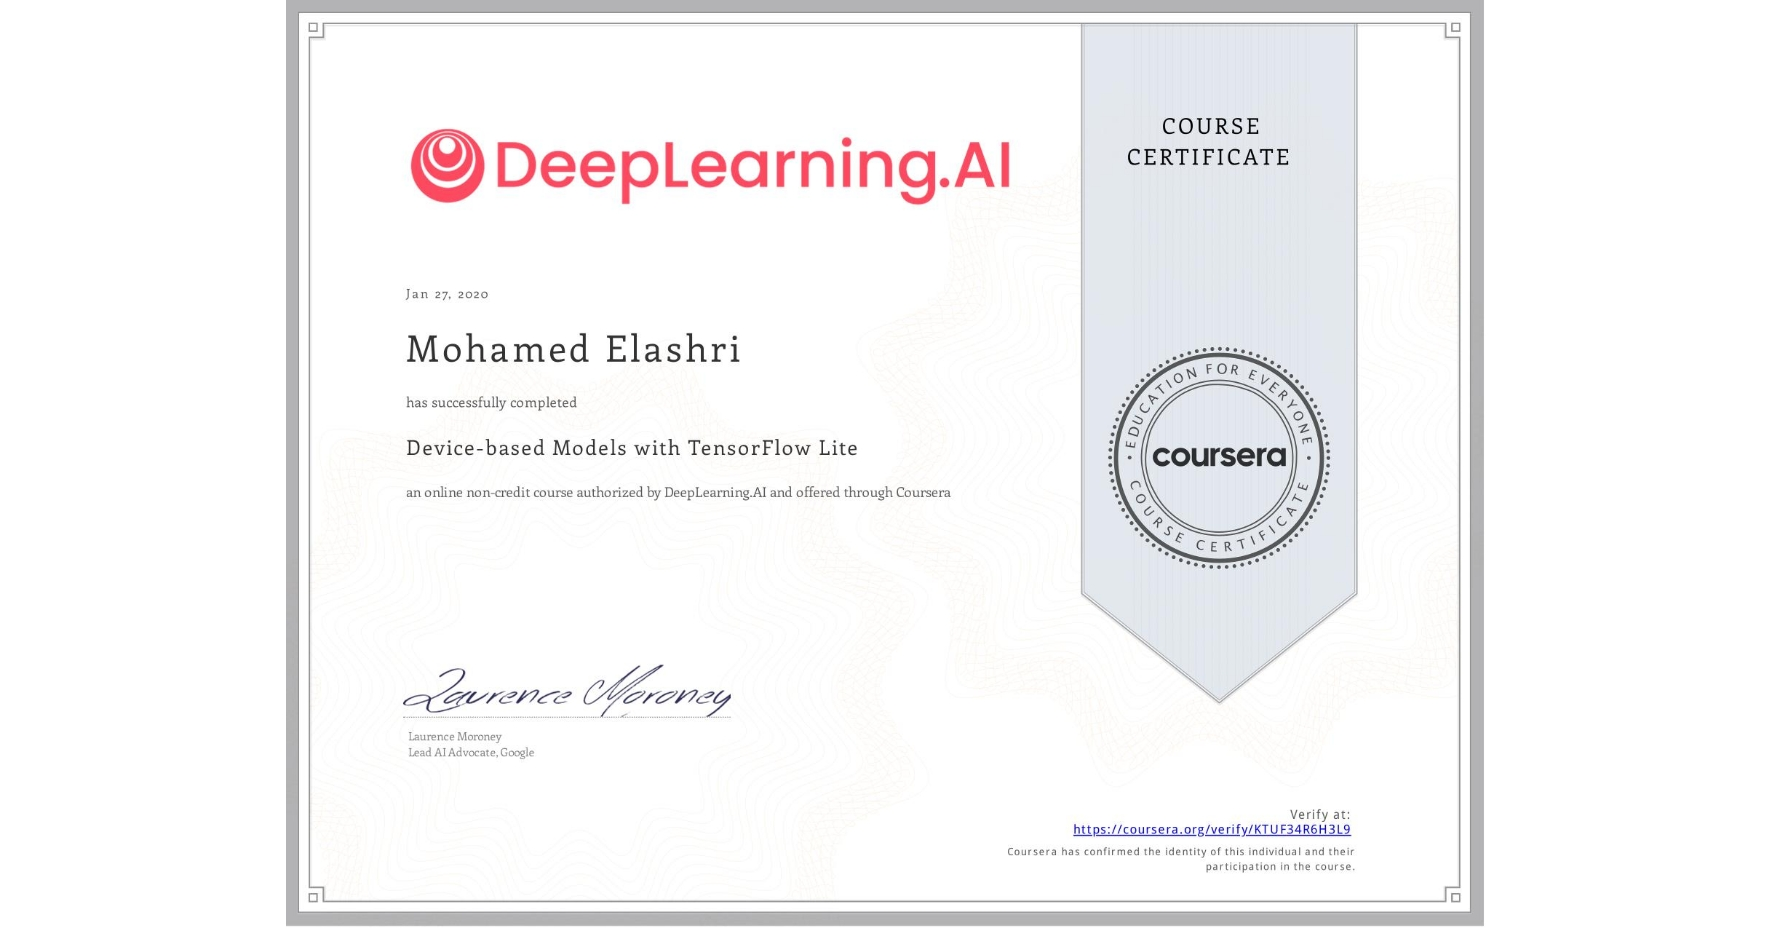 View certificate for Mohamed Elashri, Device-based Models with TensorFlow Lite, an online non-credit course authorized by DeepLearning.AI and offered through Coursera